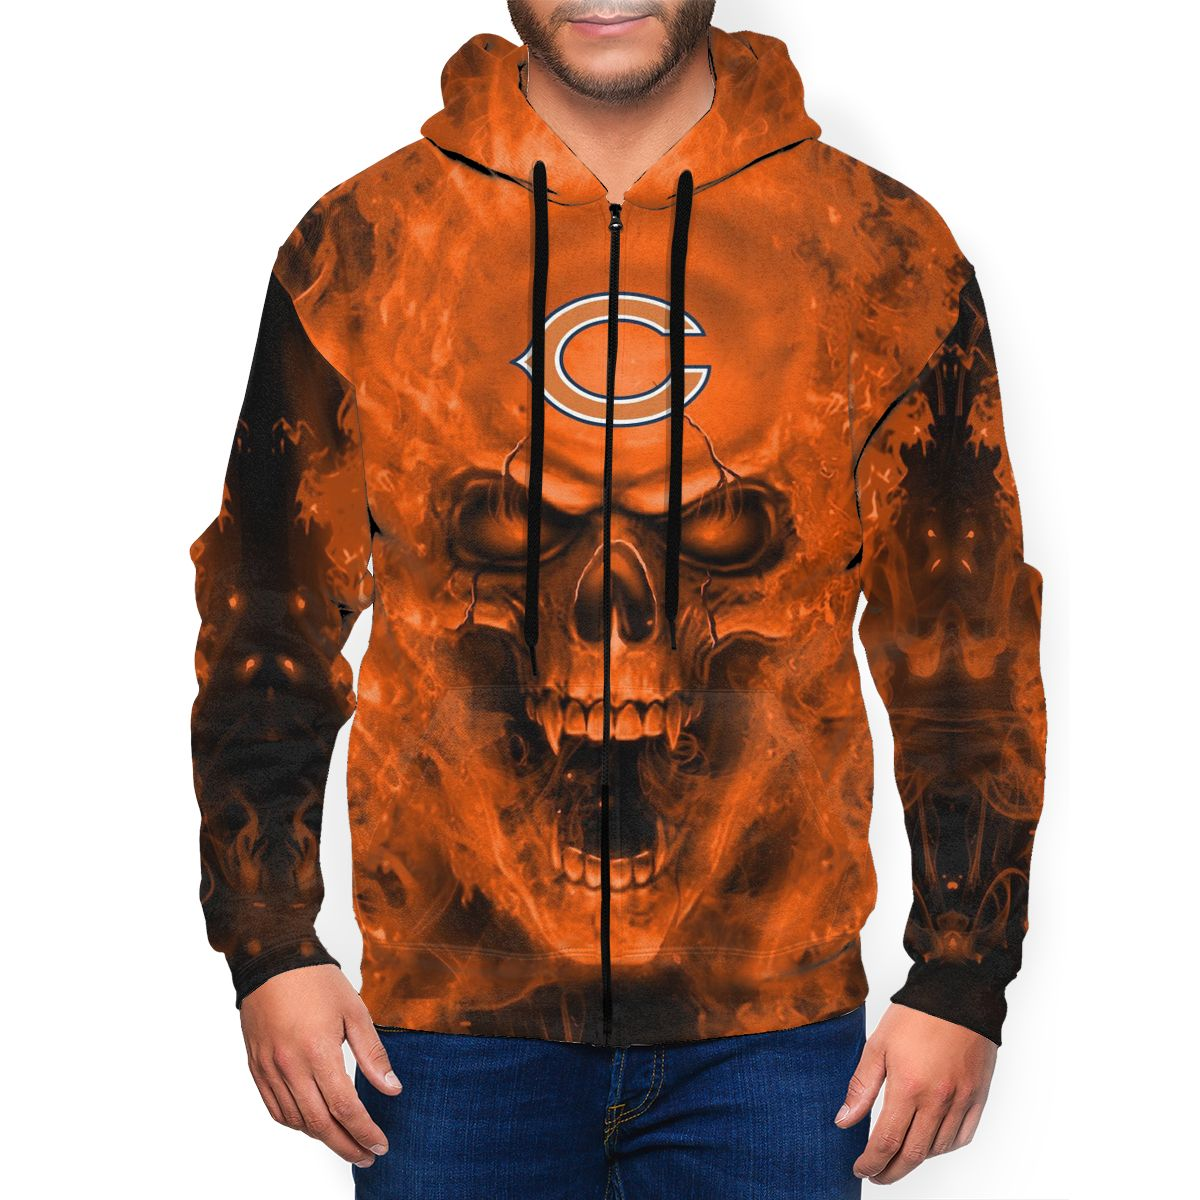 3D Skull Bears Men's Zip Hooded Sweatshirt